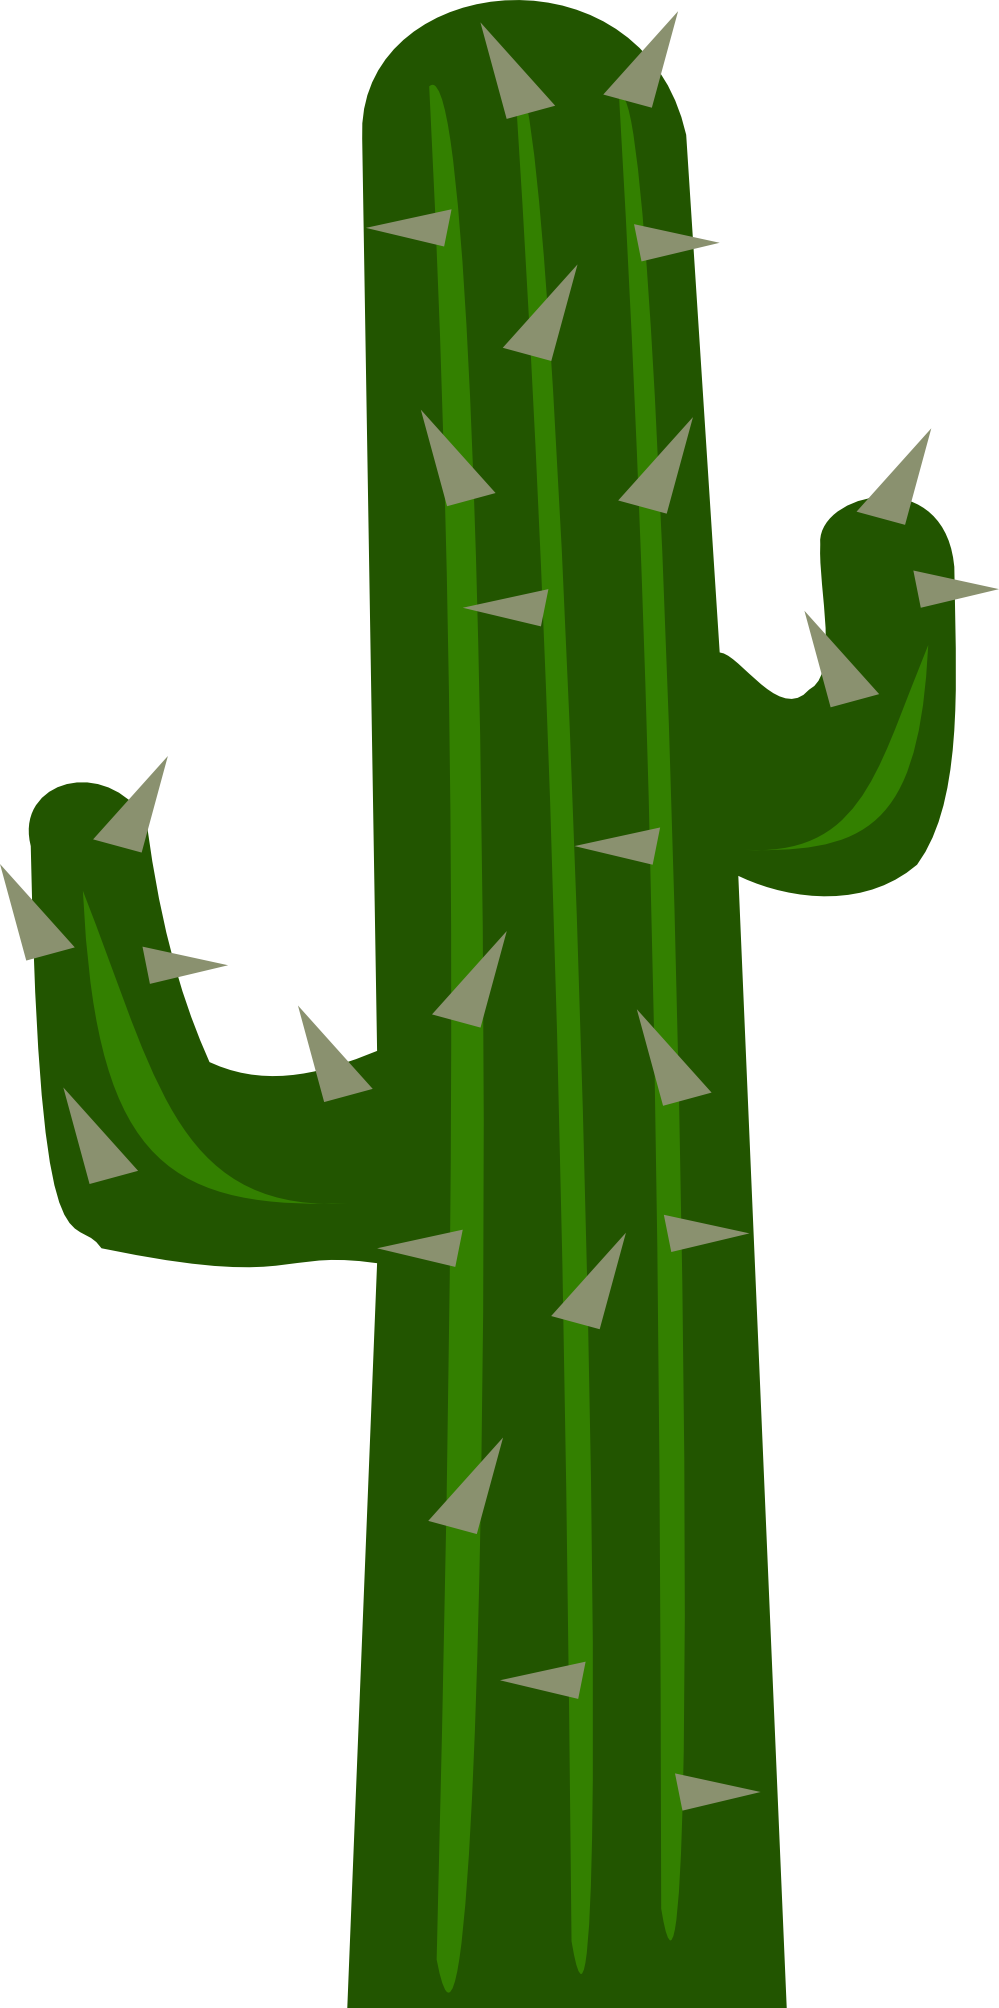 Cactus png clipart. Image oassisclann animal jam